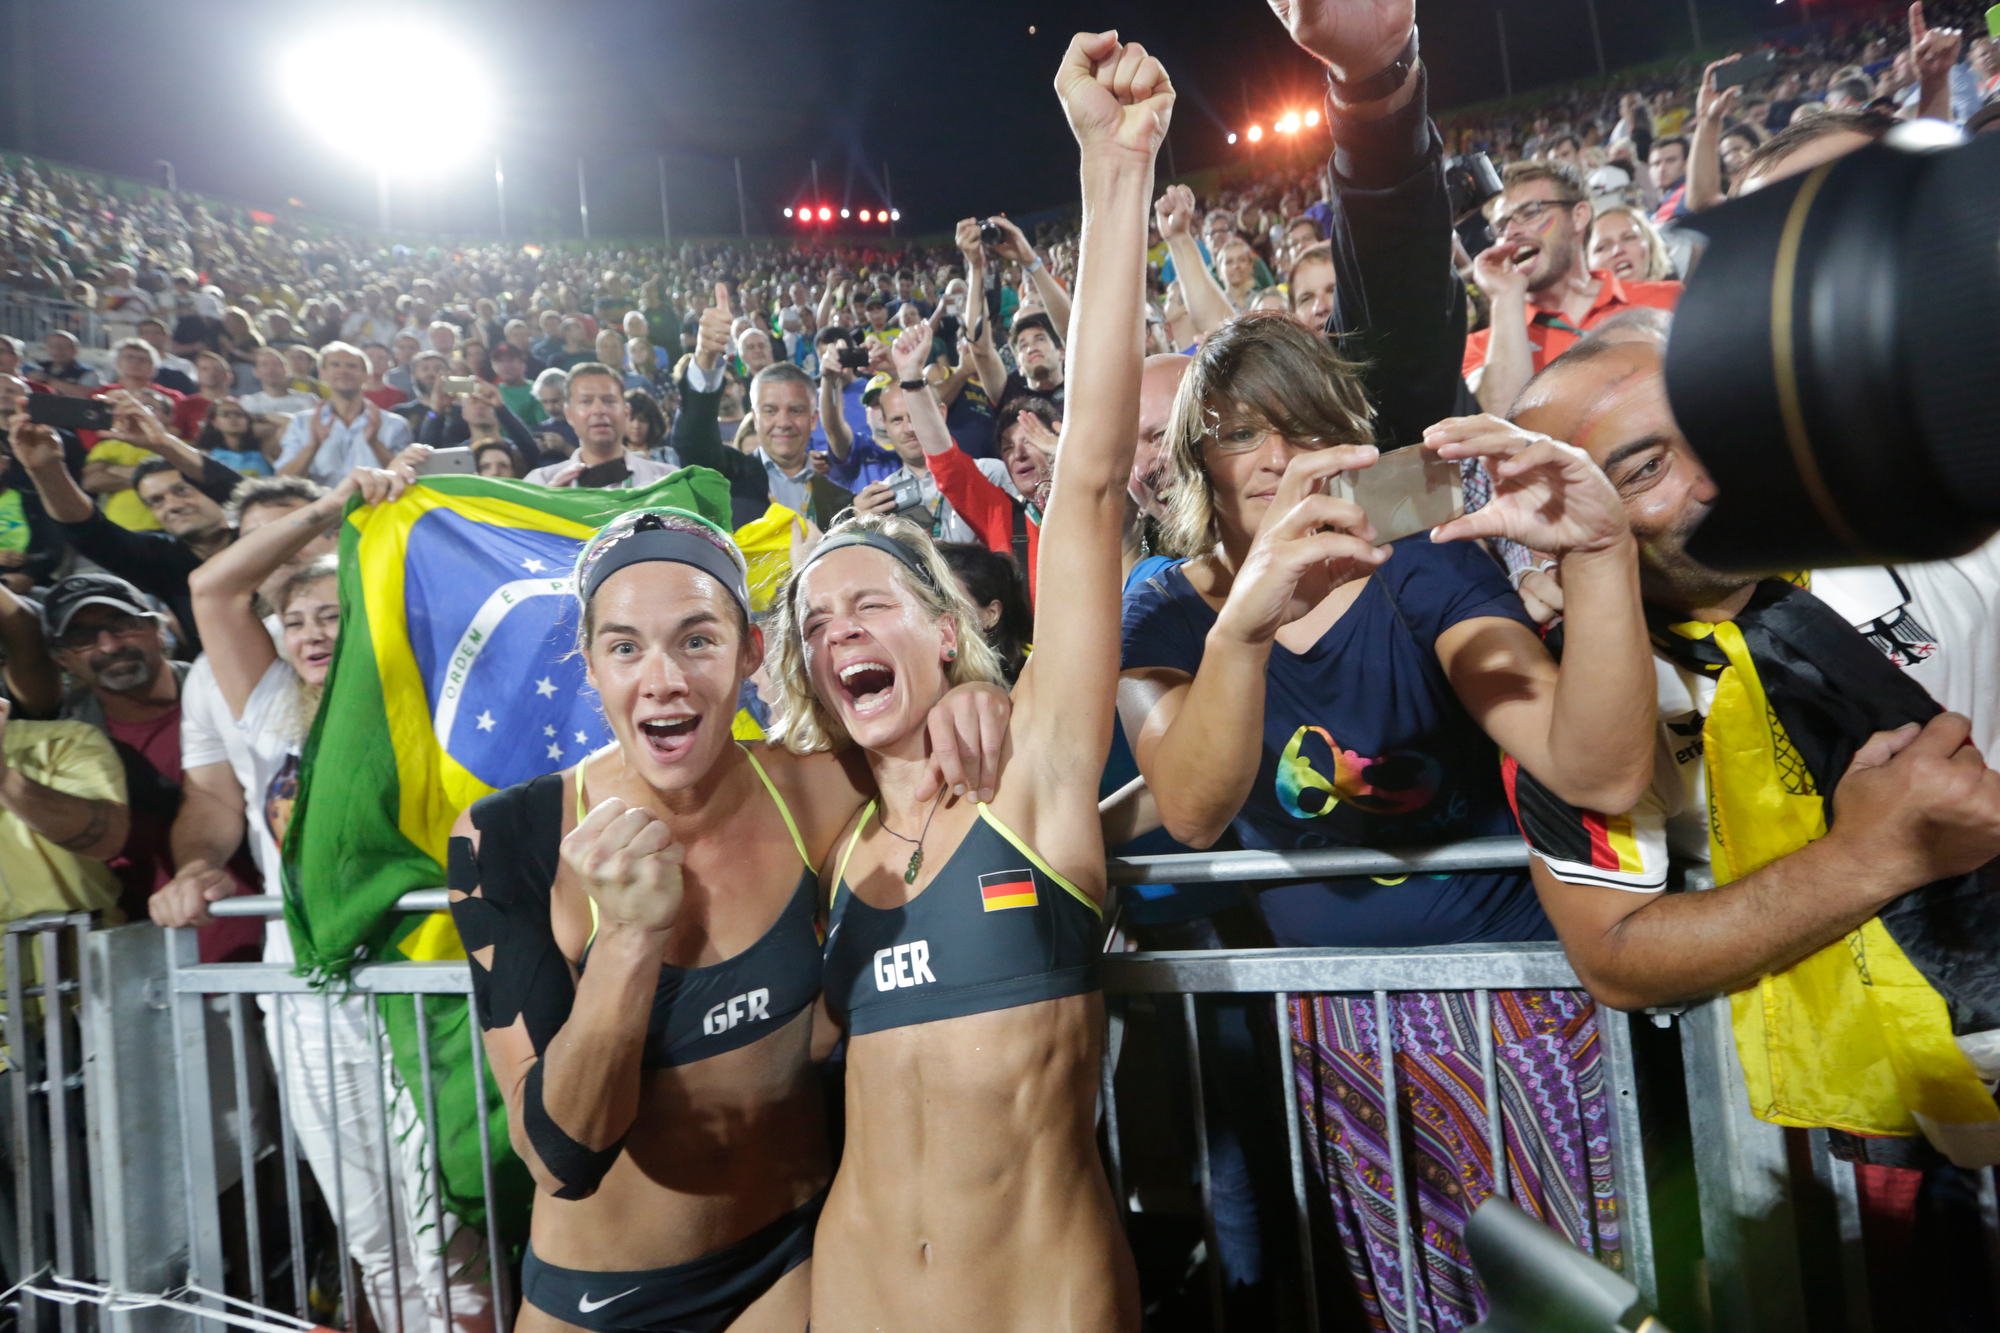 Laura Ludwig and Kira Walkenhorst of Germany celebrate with fans after winning the gold medal in their Beach Volleyball Women's Gold medal match against Agatha Bednarczuk Rippel and Barbara Seixas de Freitas of Brazil at the Beach Volleyball Arena at the 2016 Rio Summer Olympics in Rio de Janeiro, Brazil, on August 17, 2016.